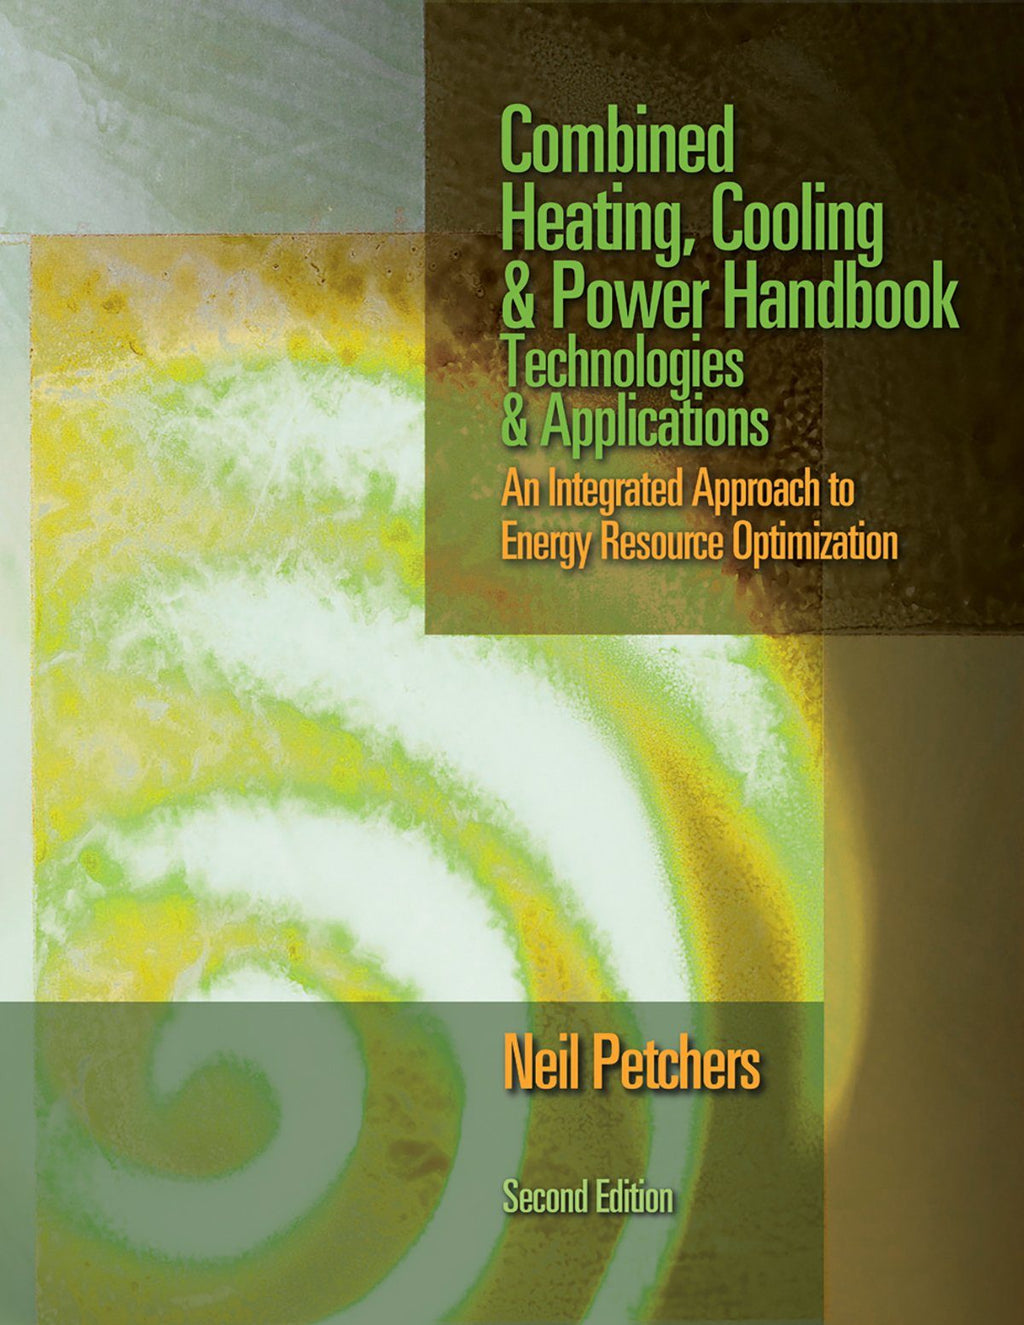 Combined Heating, Cooling & Power Handbook: Technologies & Applications, 2nd Edition - AEE Programs